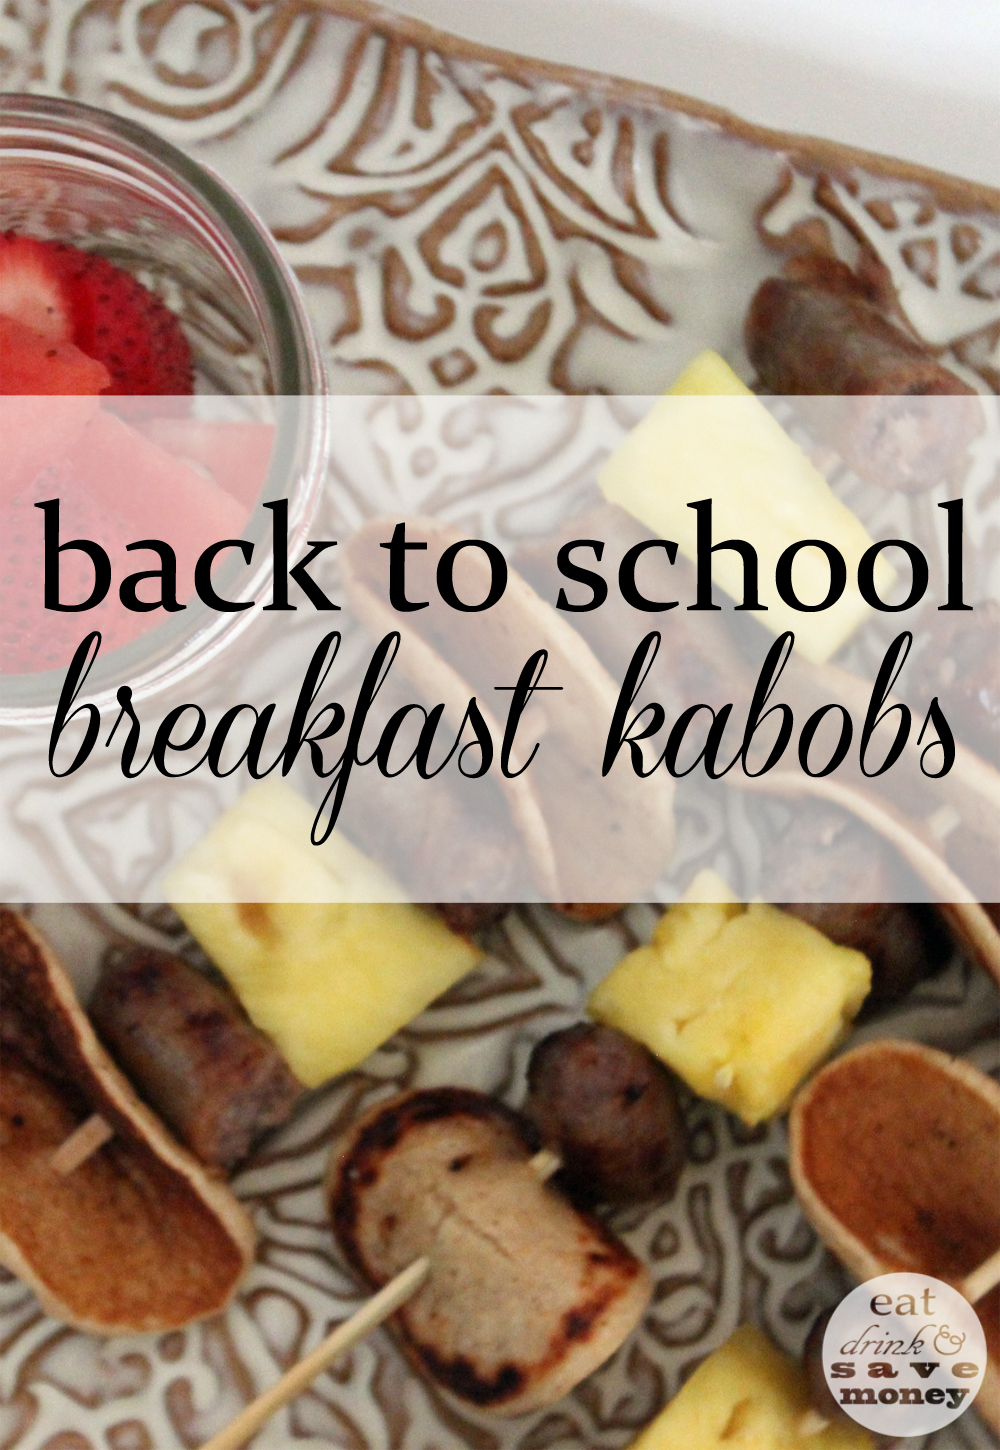 Back to school breakfast kabobs are made with Johnsonville sausages, mini pankcakes and pineapple